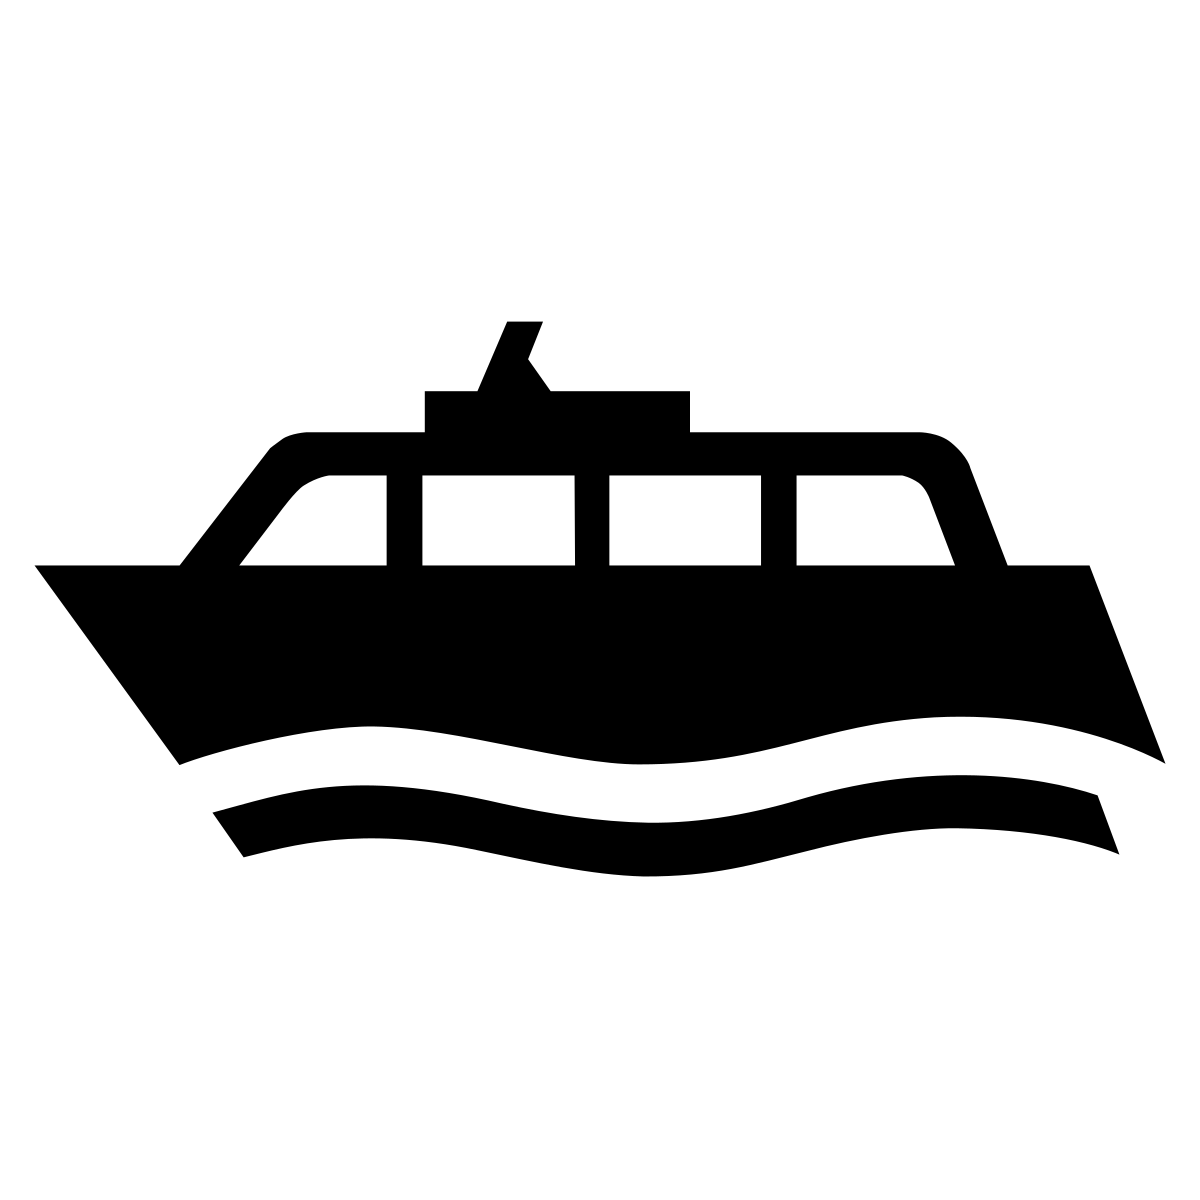 Ferry Icon Png - File:BSicon FERRY.svg - Wikimedia Commons